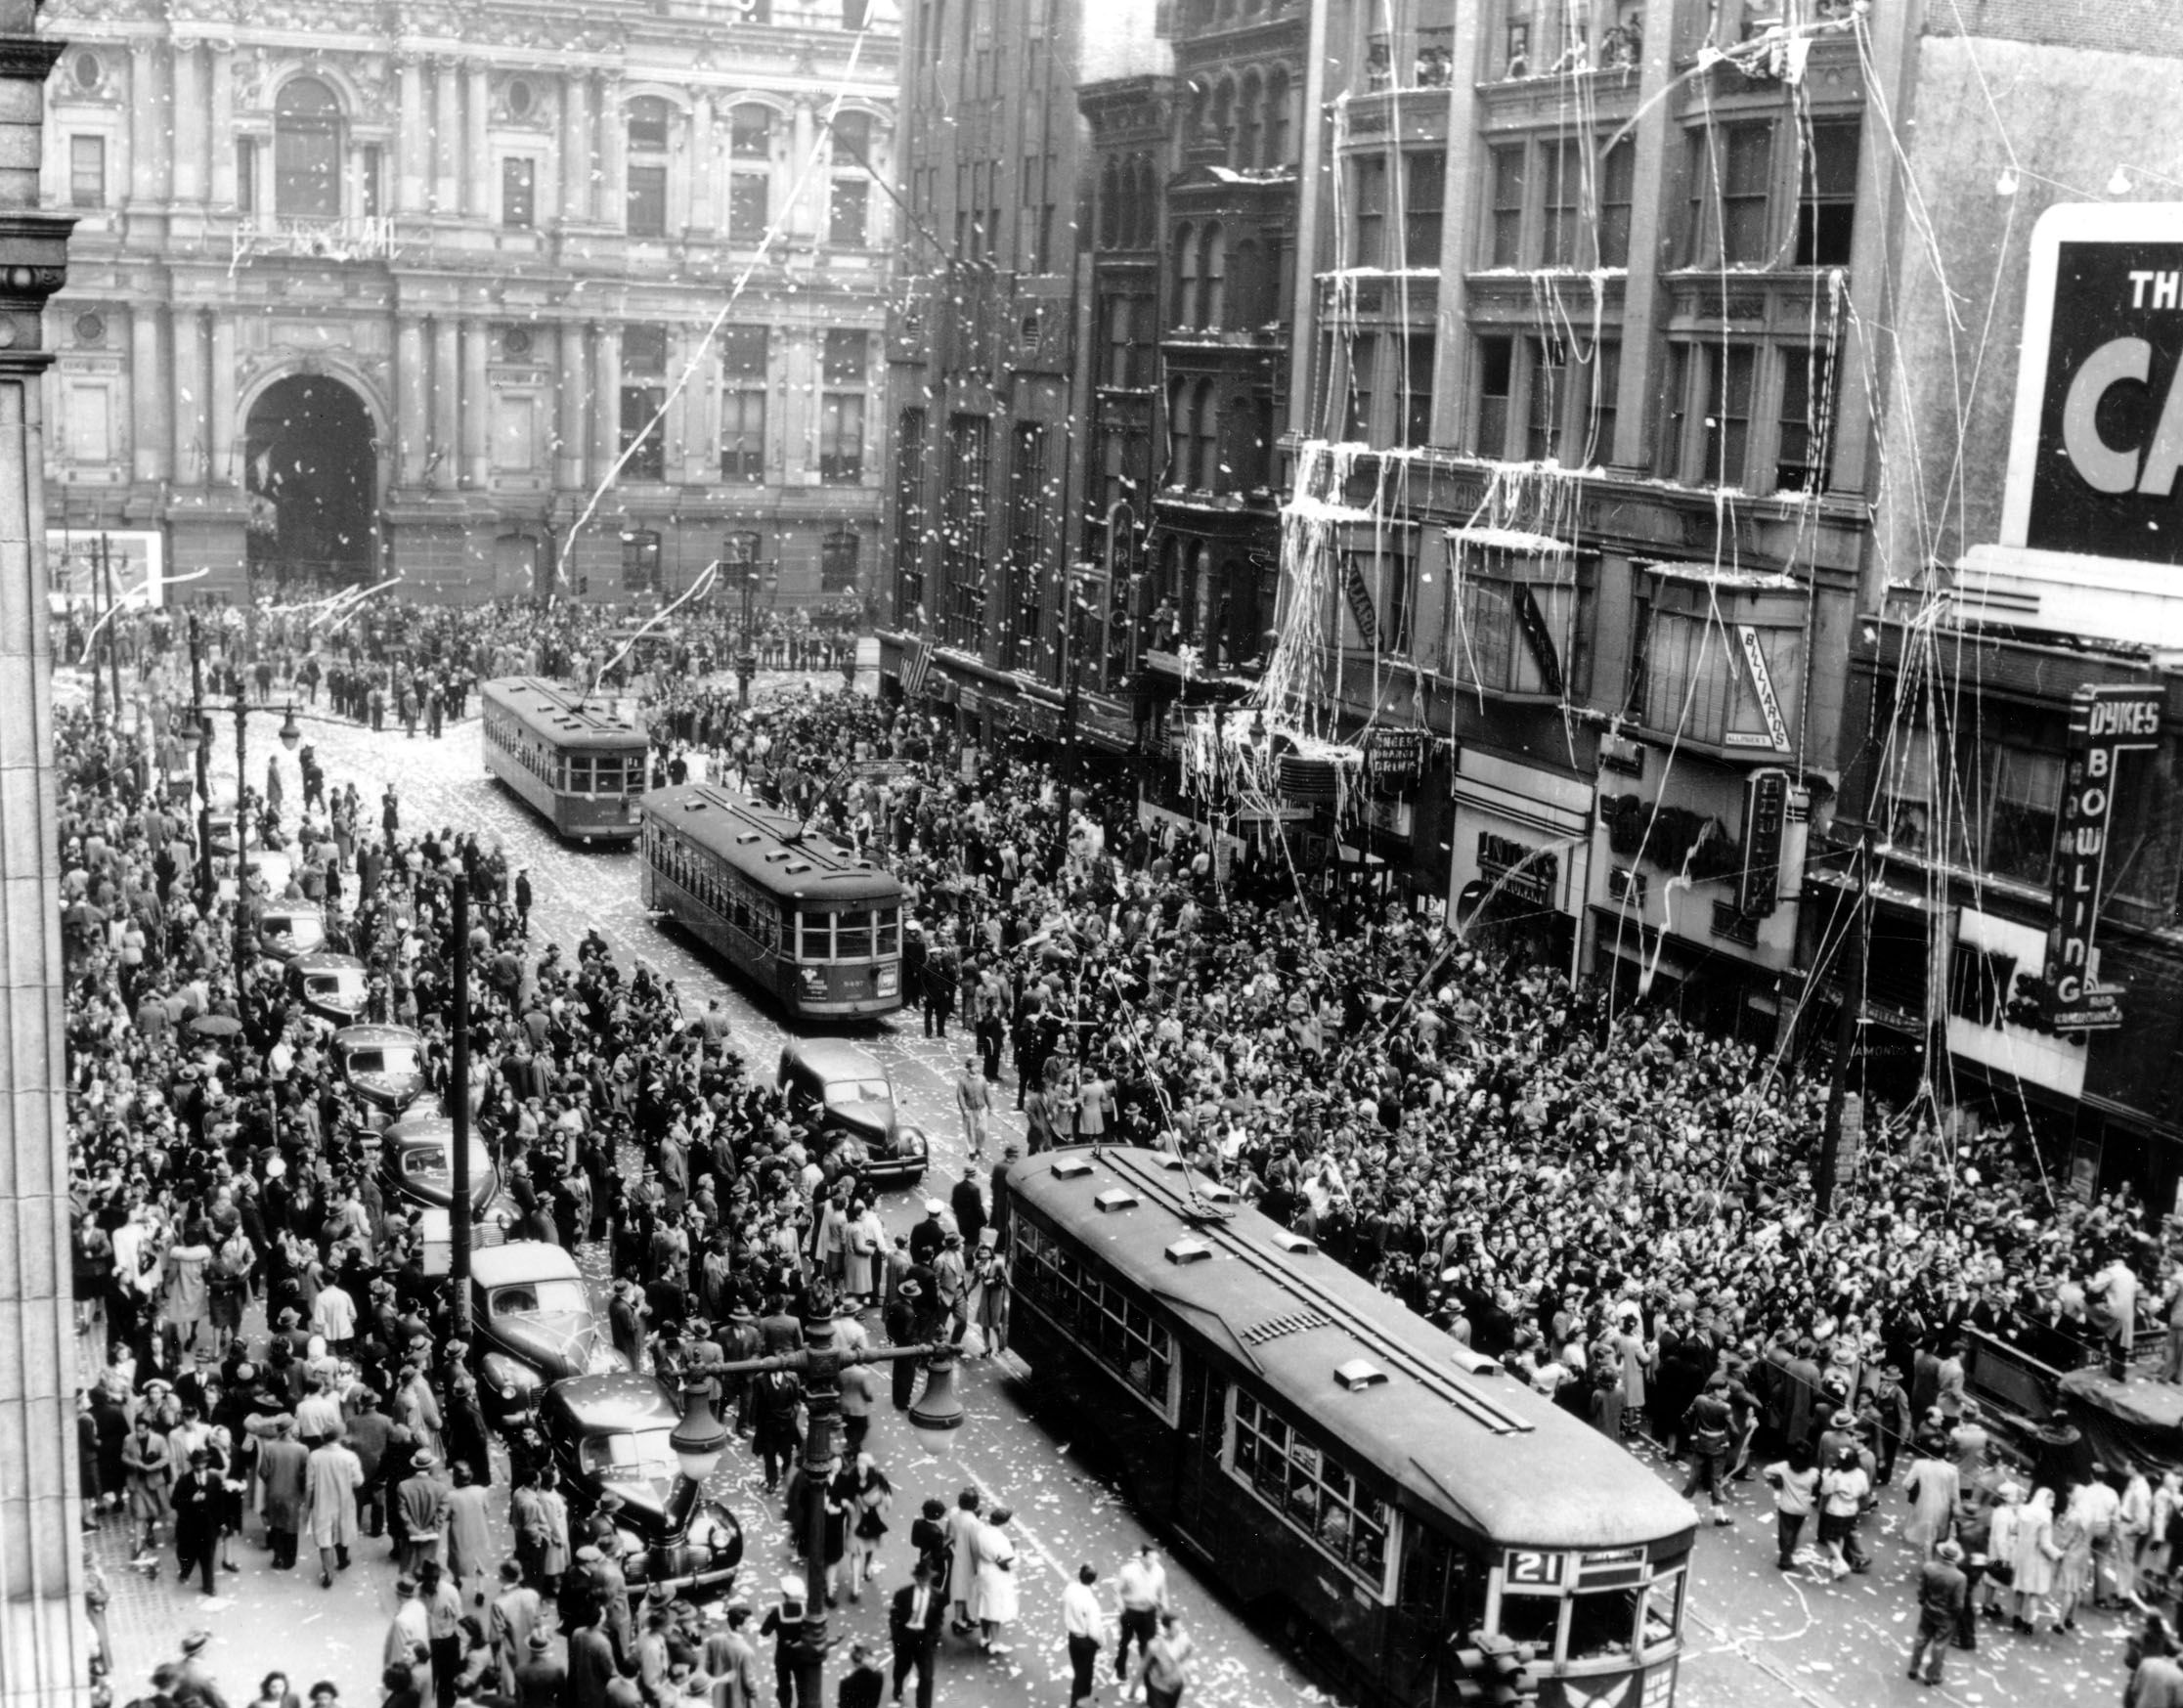 On May 8, 1945, Philadelphia held a ticker tape parade to